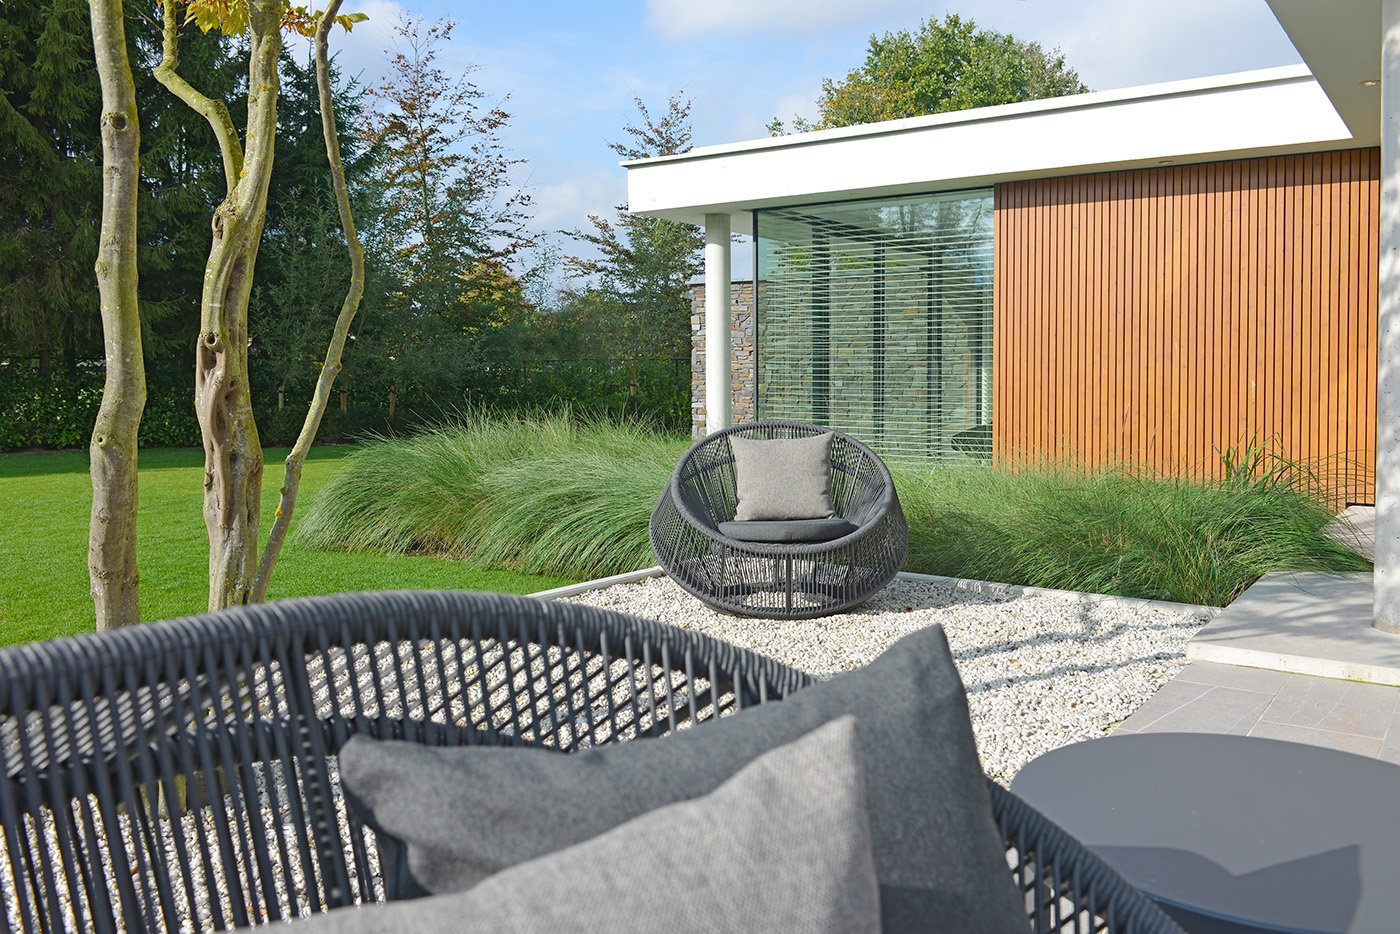 gardenfurniture furniture design  product design  industrial design  outdoor furniture Design furniture WOVEN STRUCTURES